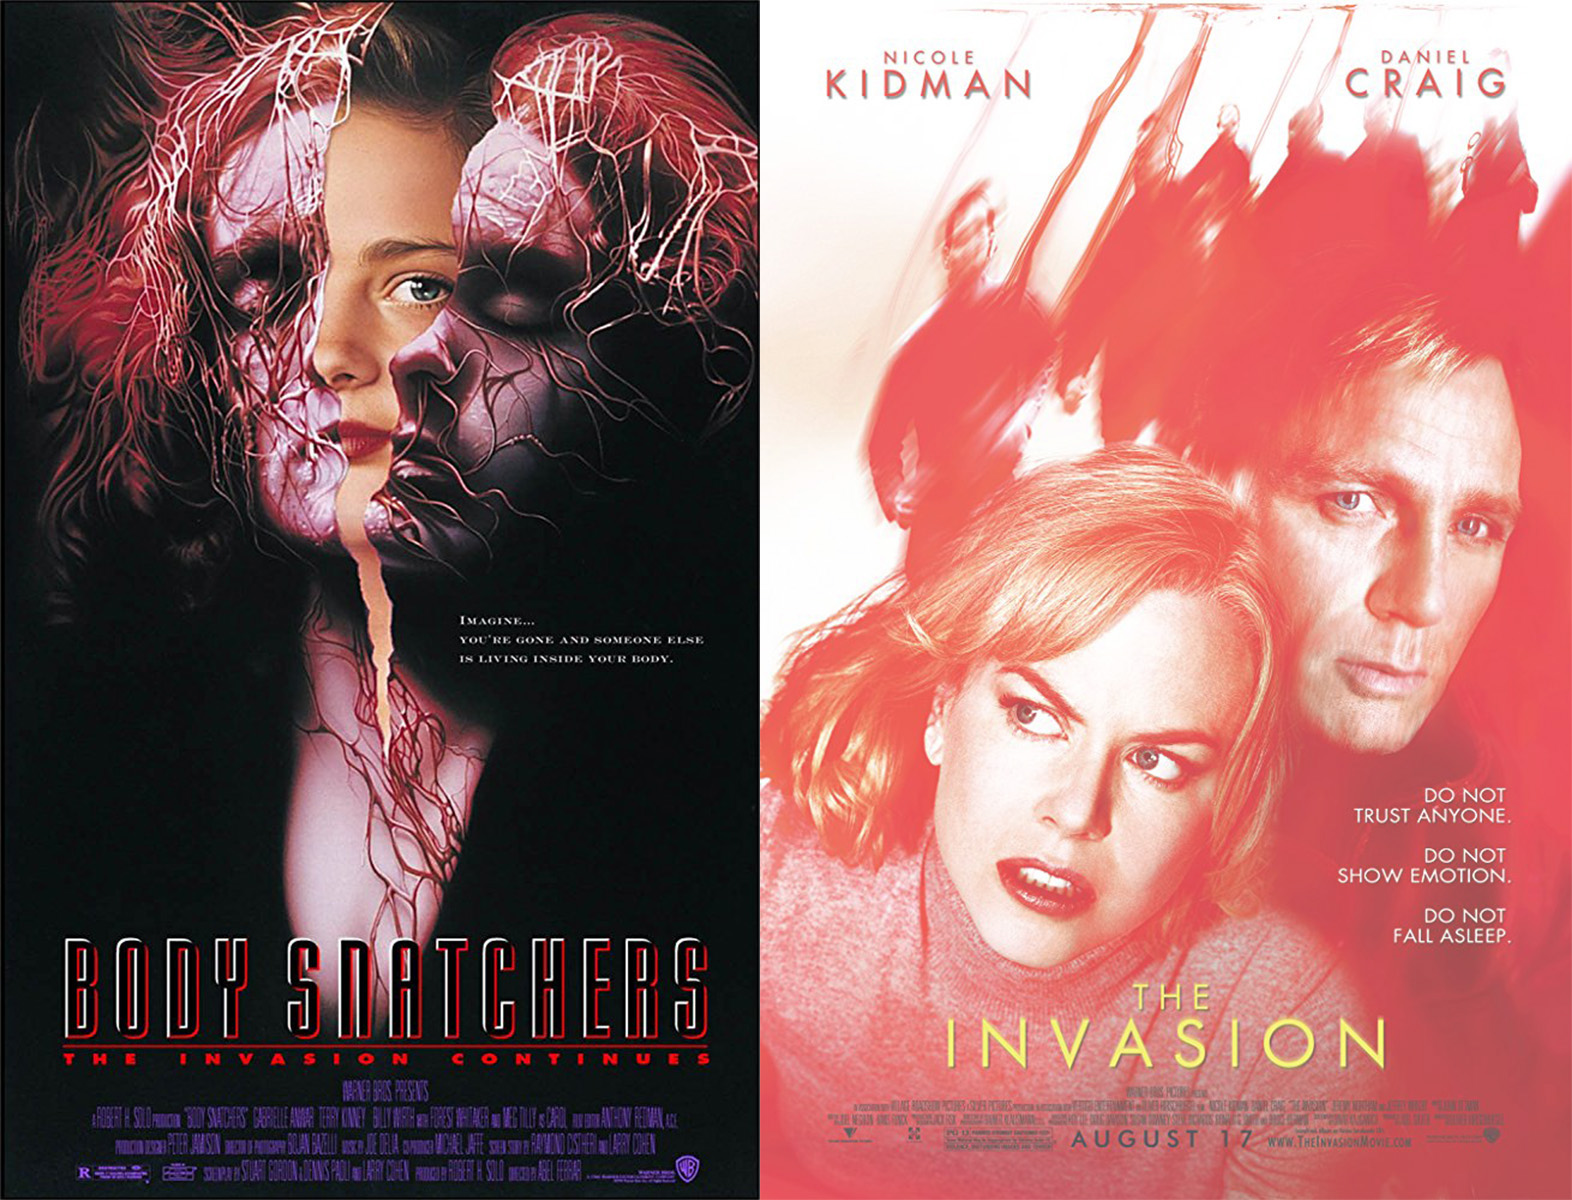 Left: 1993 Poster; Right: 2007 Poster